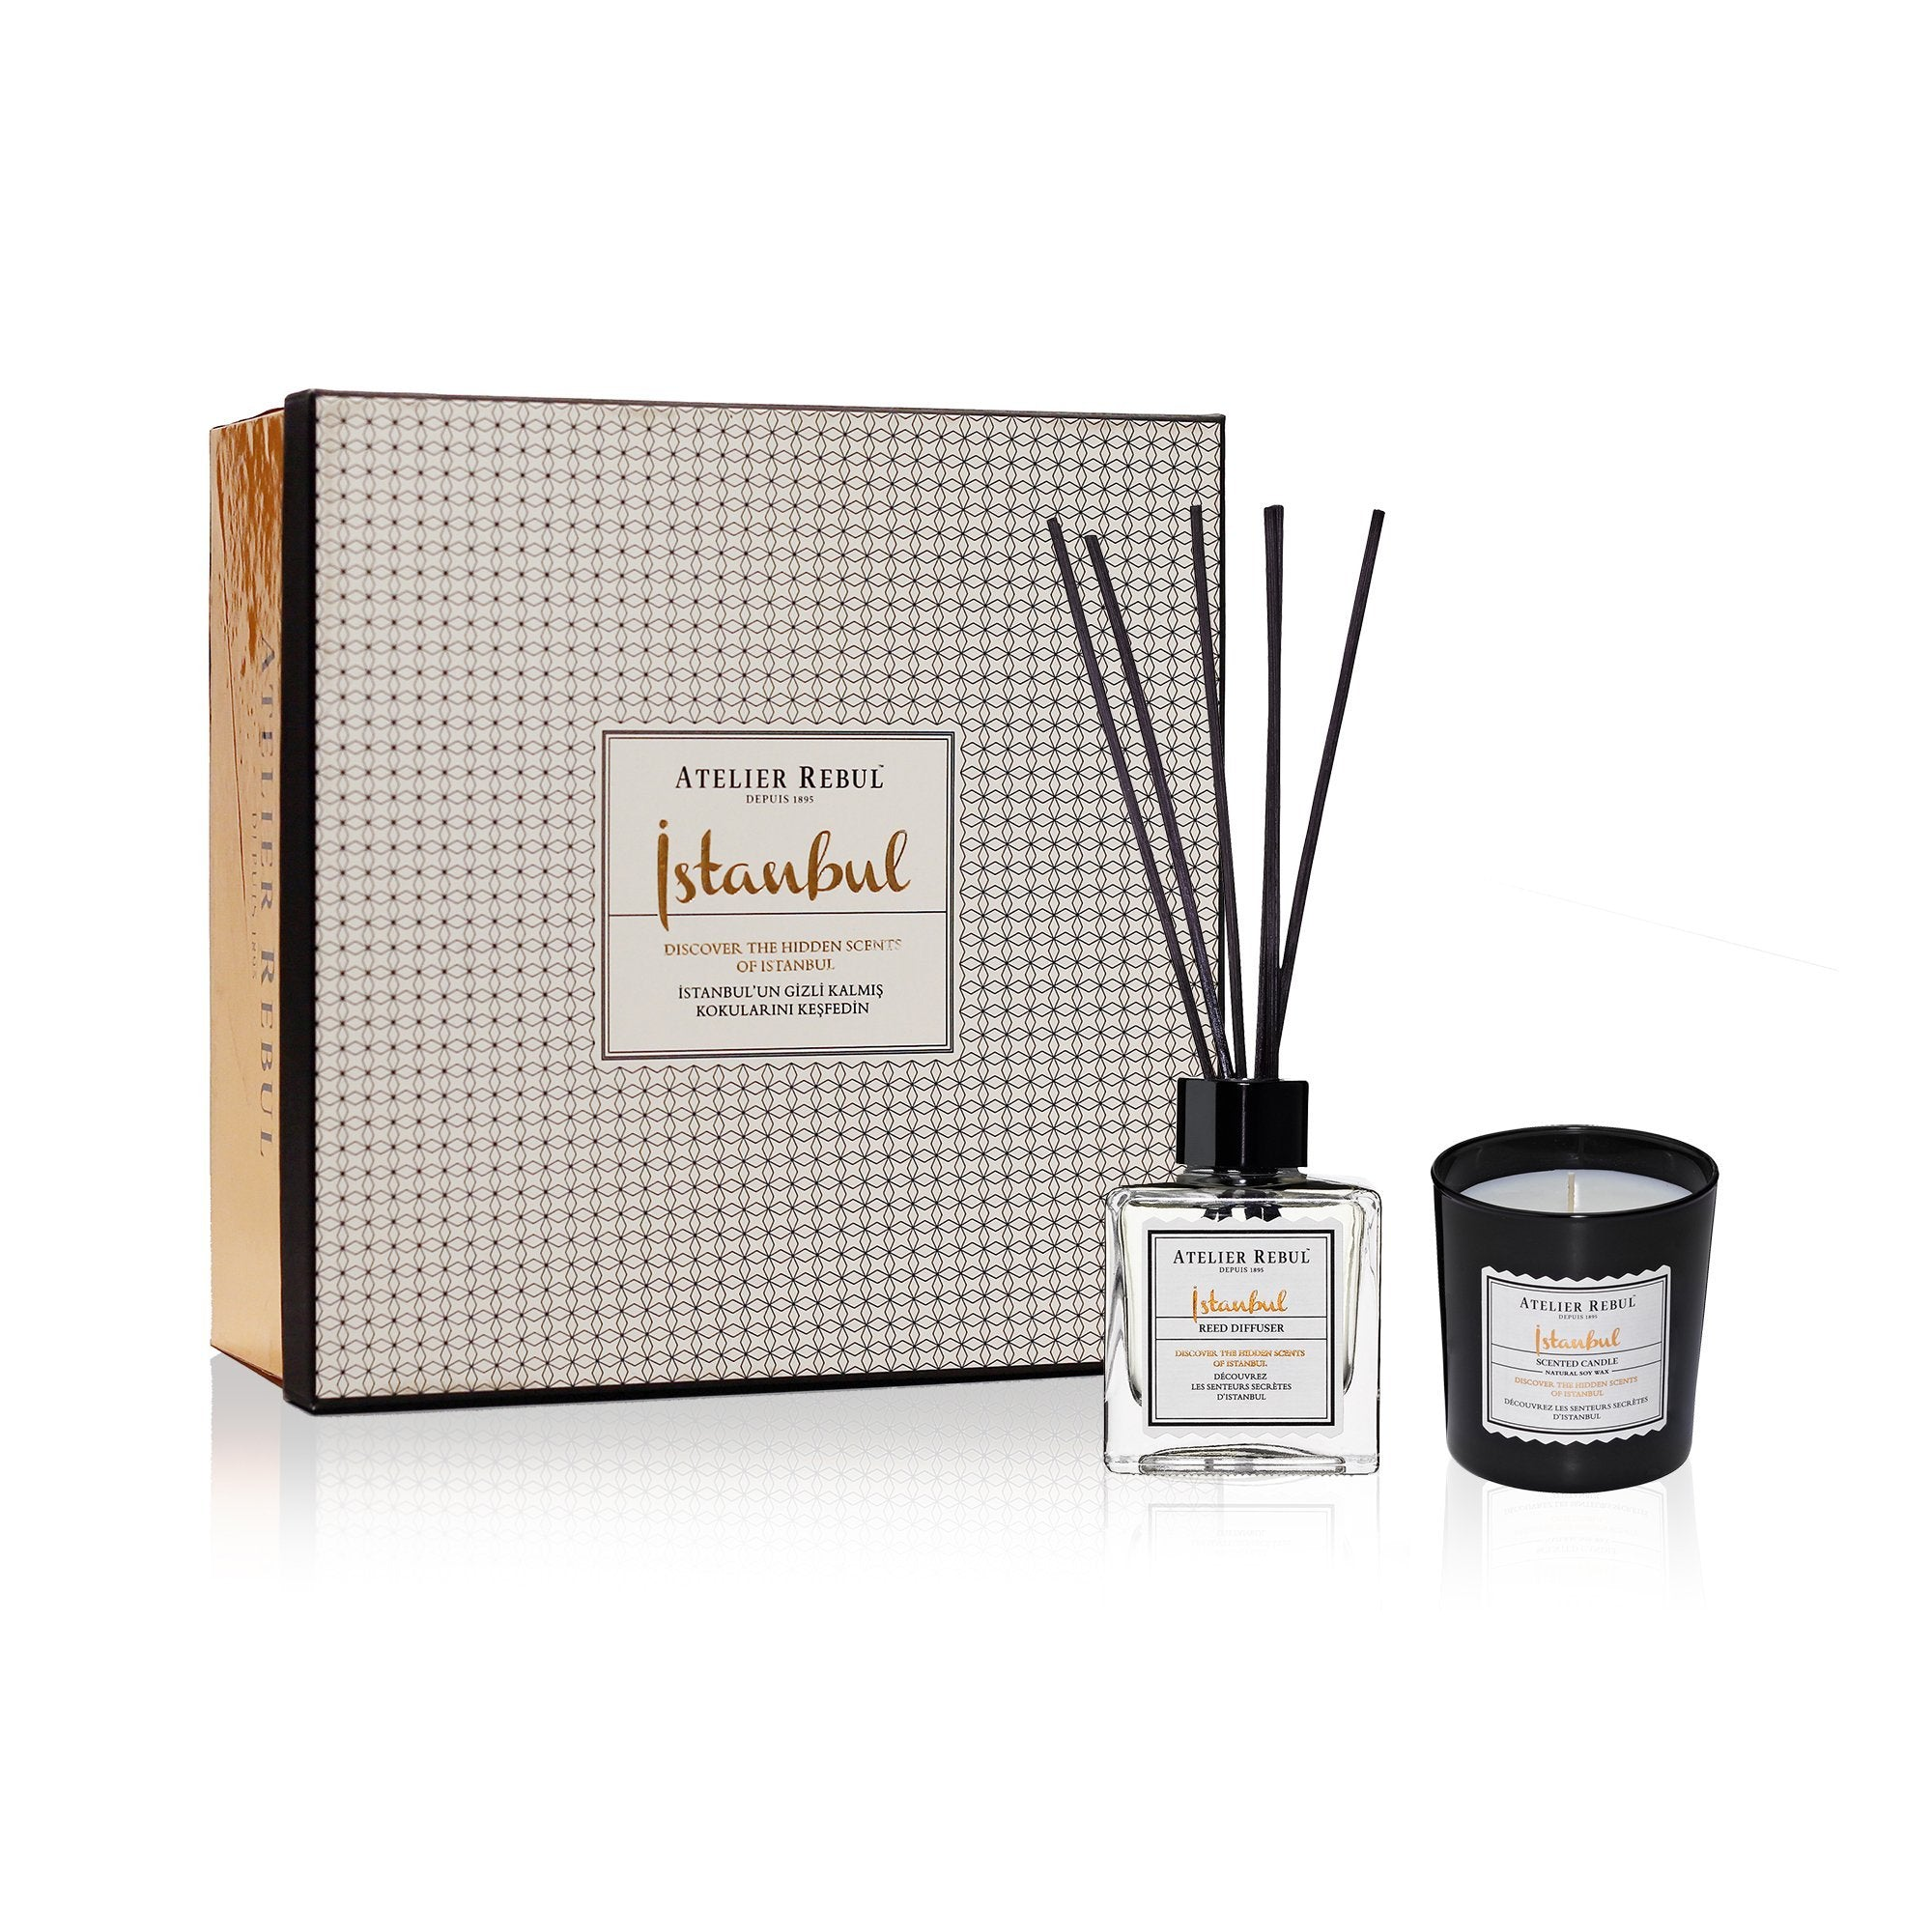 Istanbul Fragrance Sticks and Scented Candle Giftset